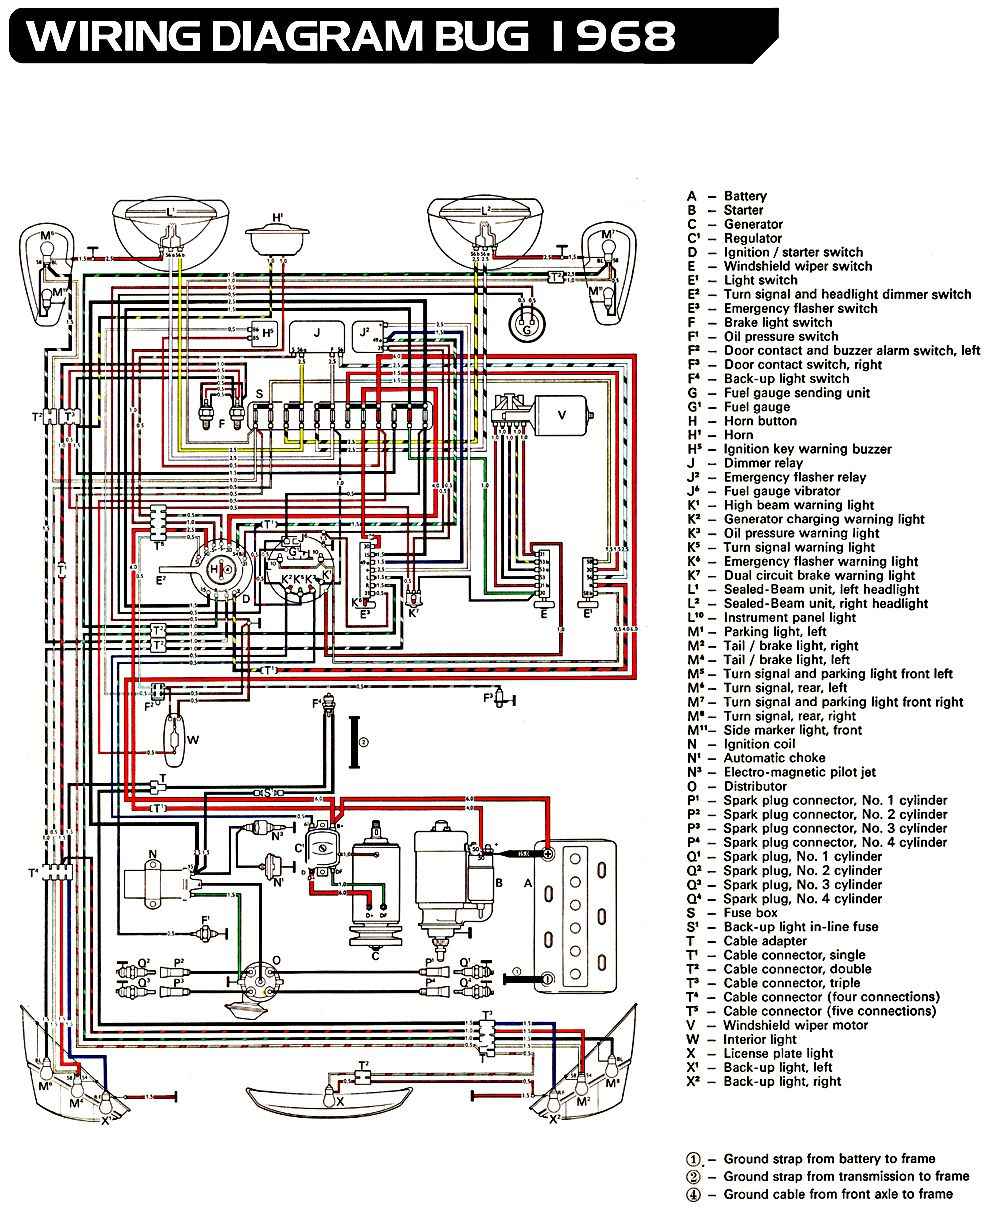 73 vw bug ignition wiring blog wiring diagram 73 vw beetle coil wiring [ 996 x 1211 Pixel ]